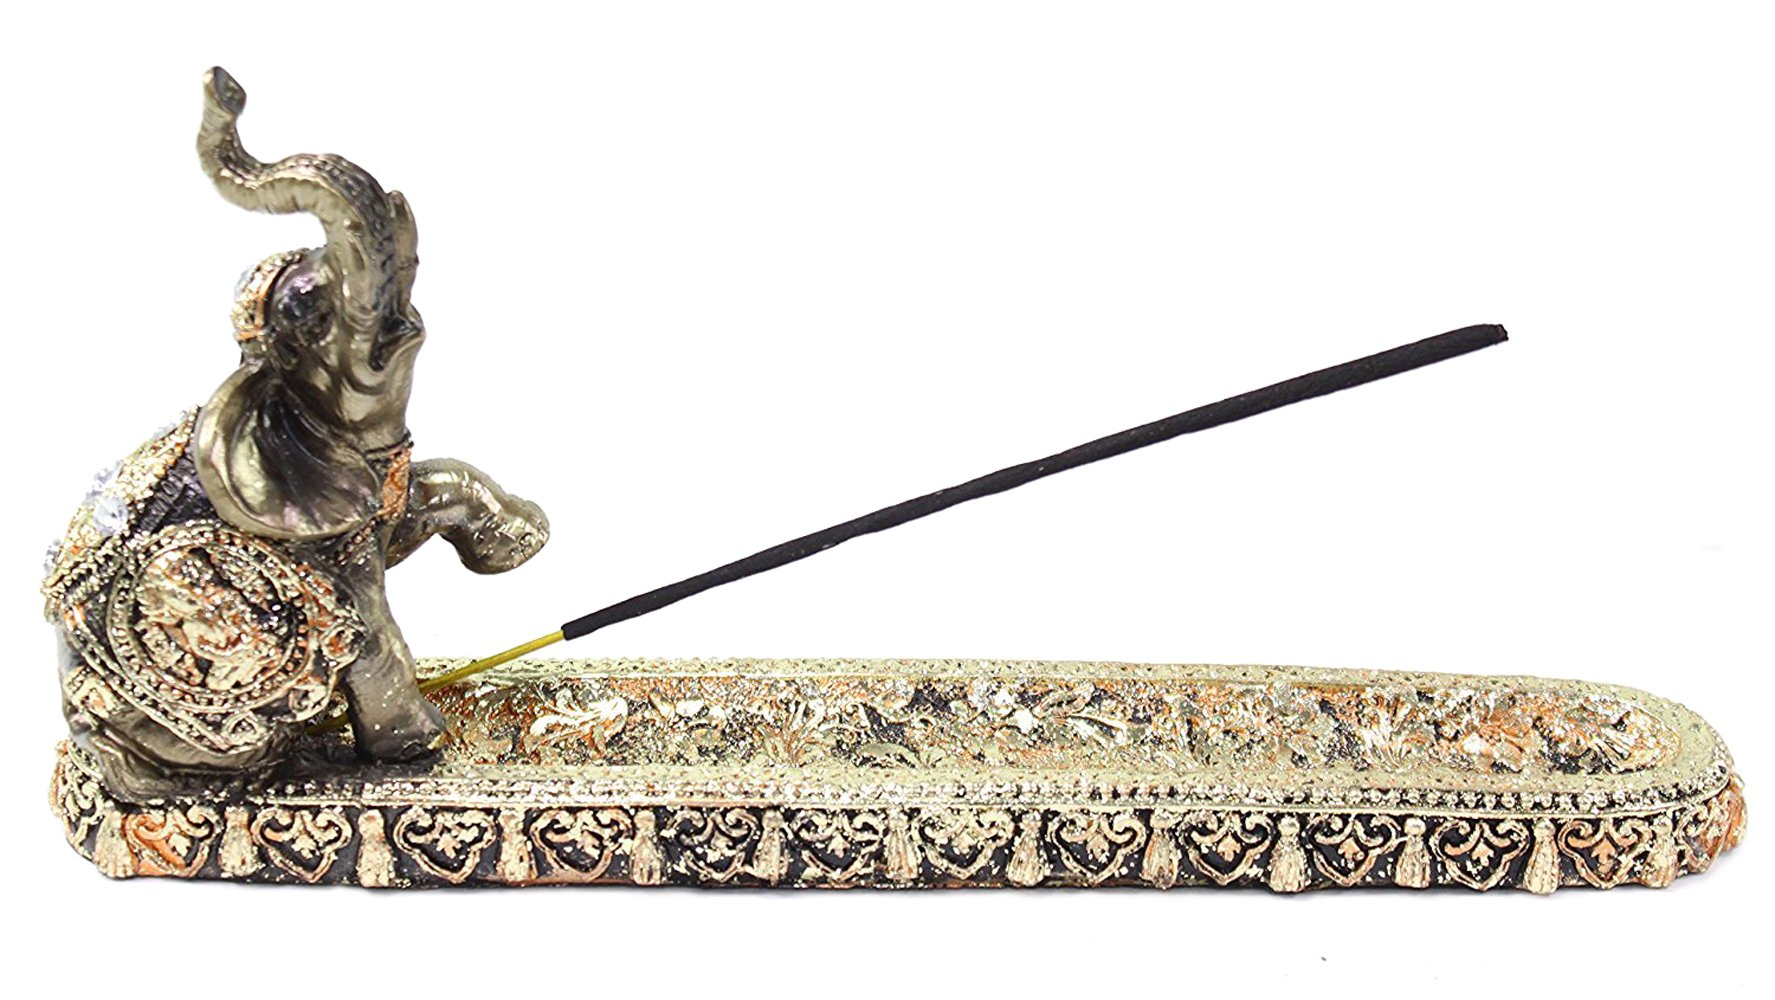 Gold Thai Elephant Buddha Wraps Incense Burner Holder Lucky Figurine Home Decor Gift (G16555) Feng Shui Idea ~ We Pay Your Sales Tax